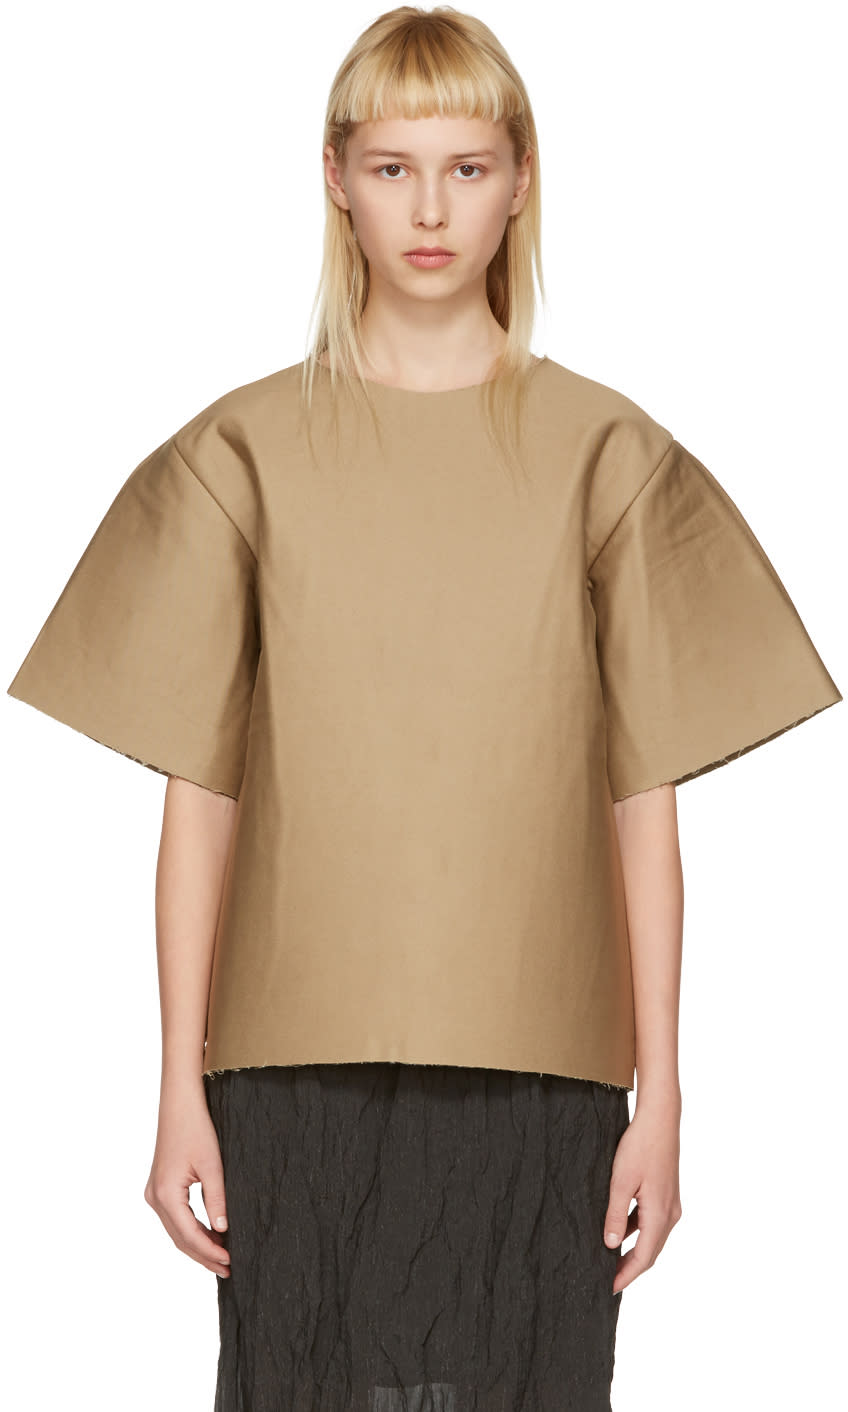 Image of Bless Brown Cardboard T-shirt